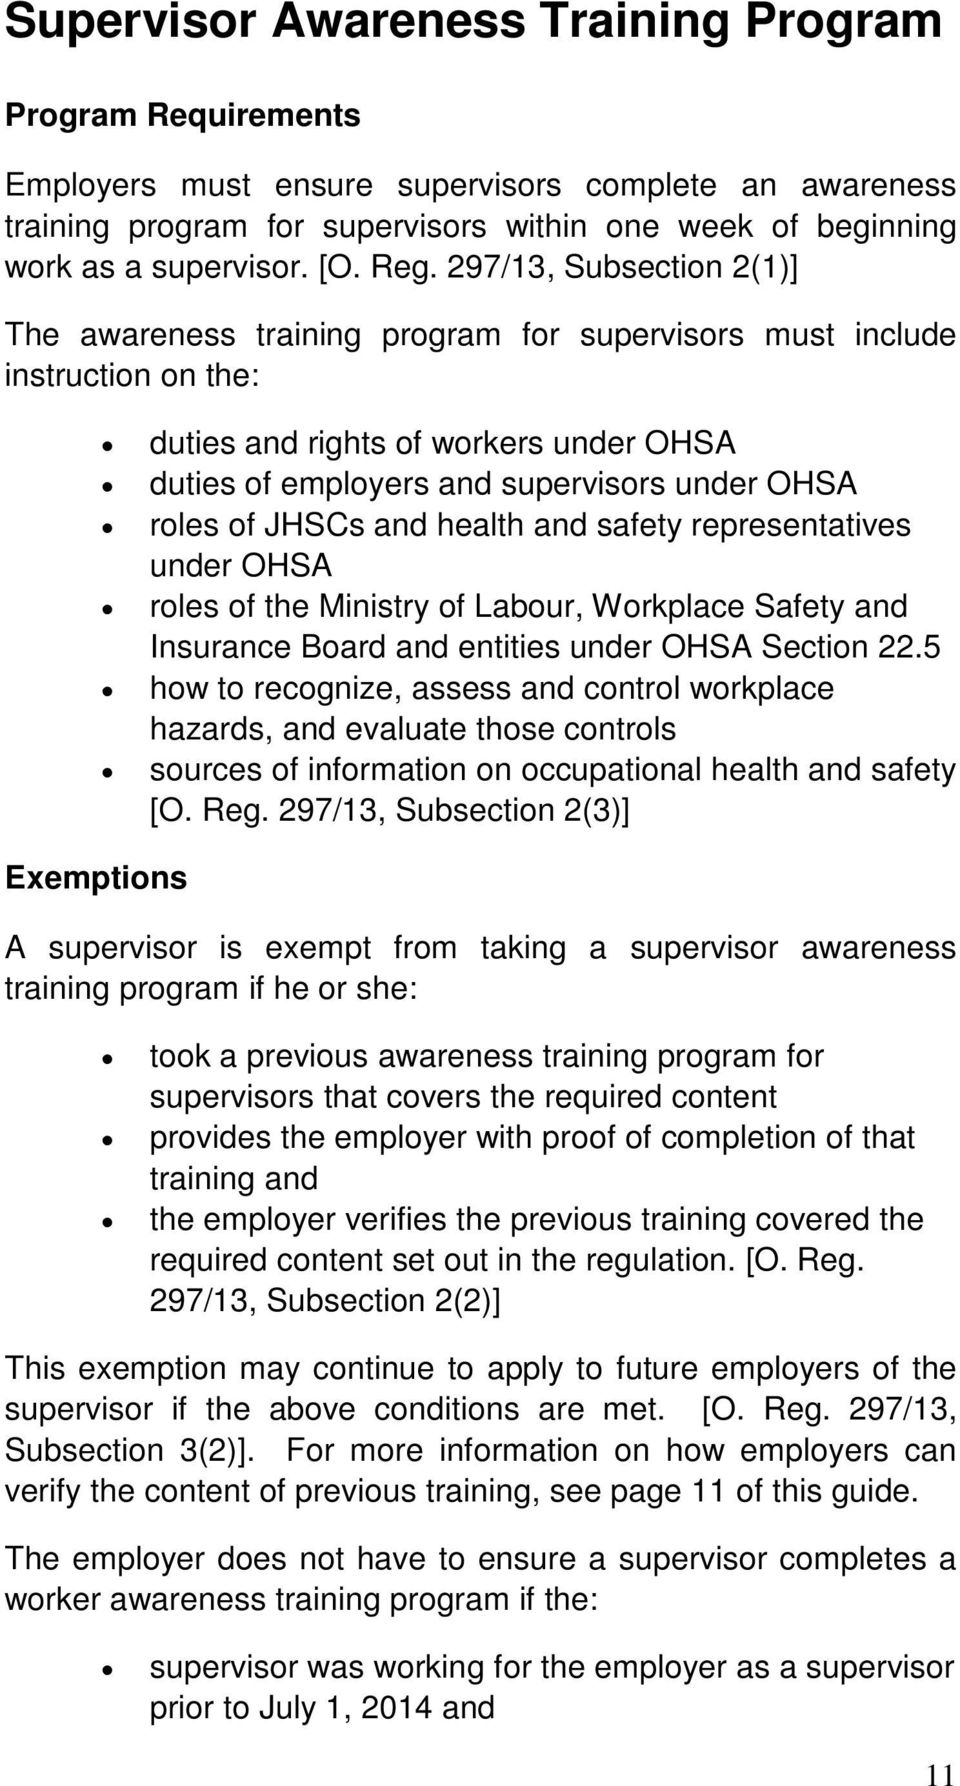 297/13, Subsection 2(1)] The awareness training program for supervisors must include instruction on the: duties and rights of workers under OHSA duties of employers and supervisors under OHSA roles